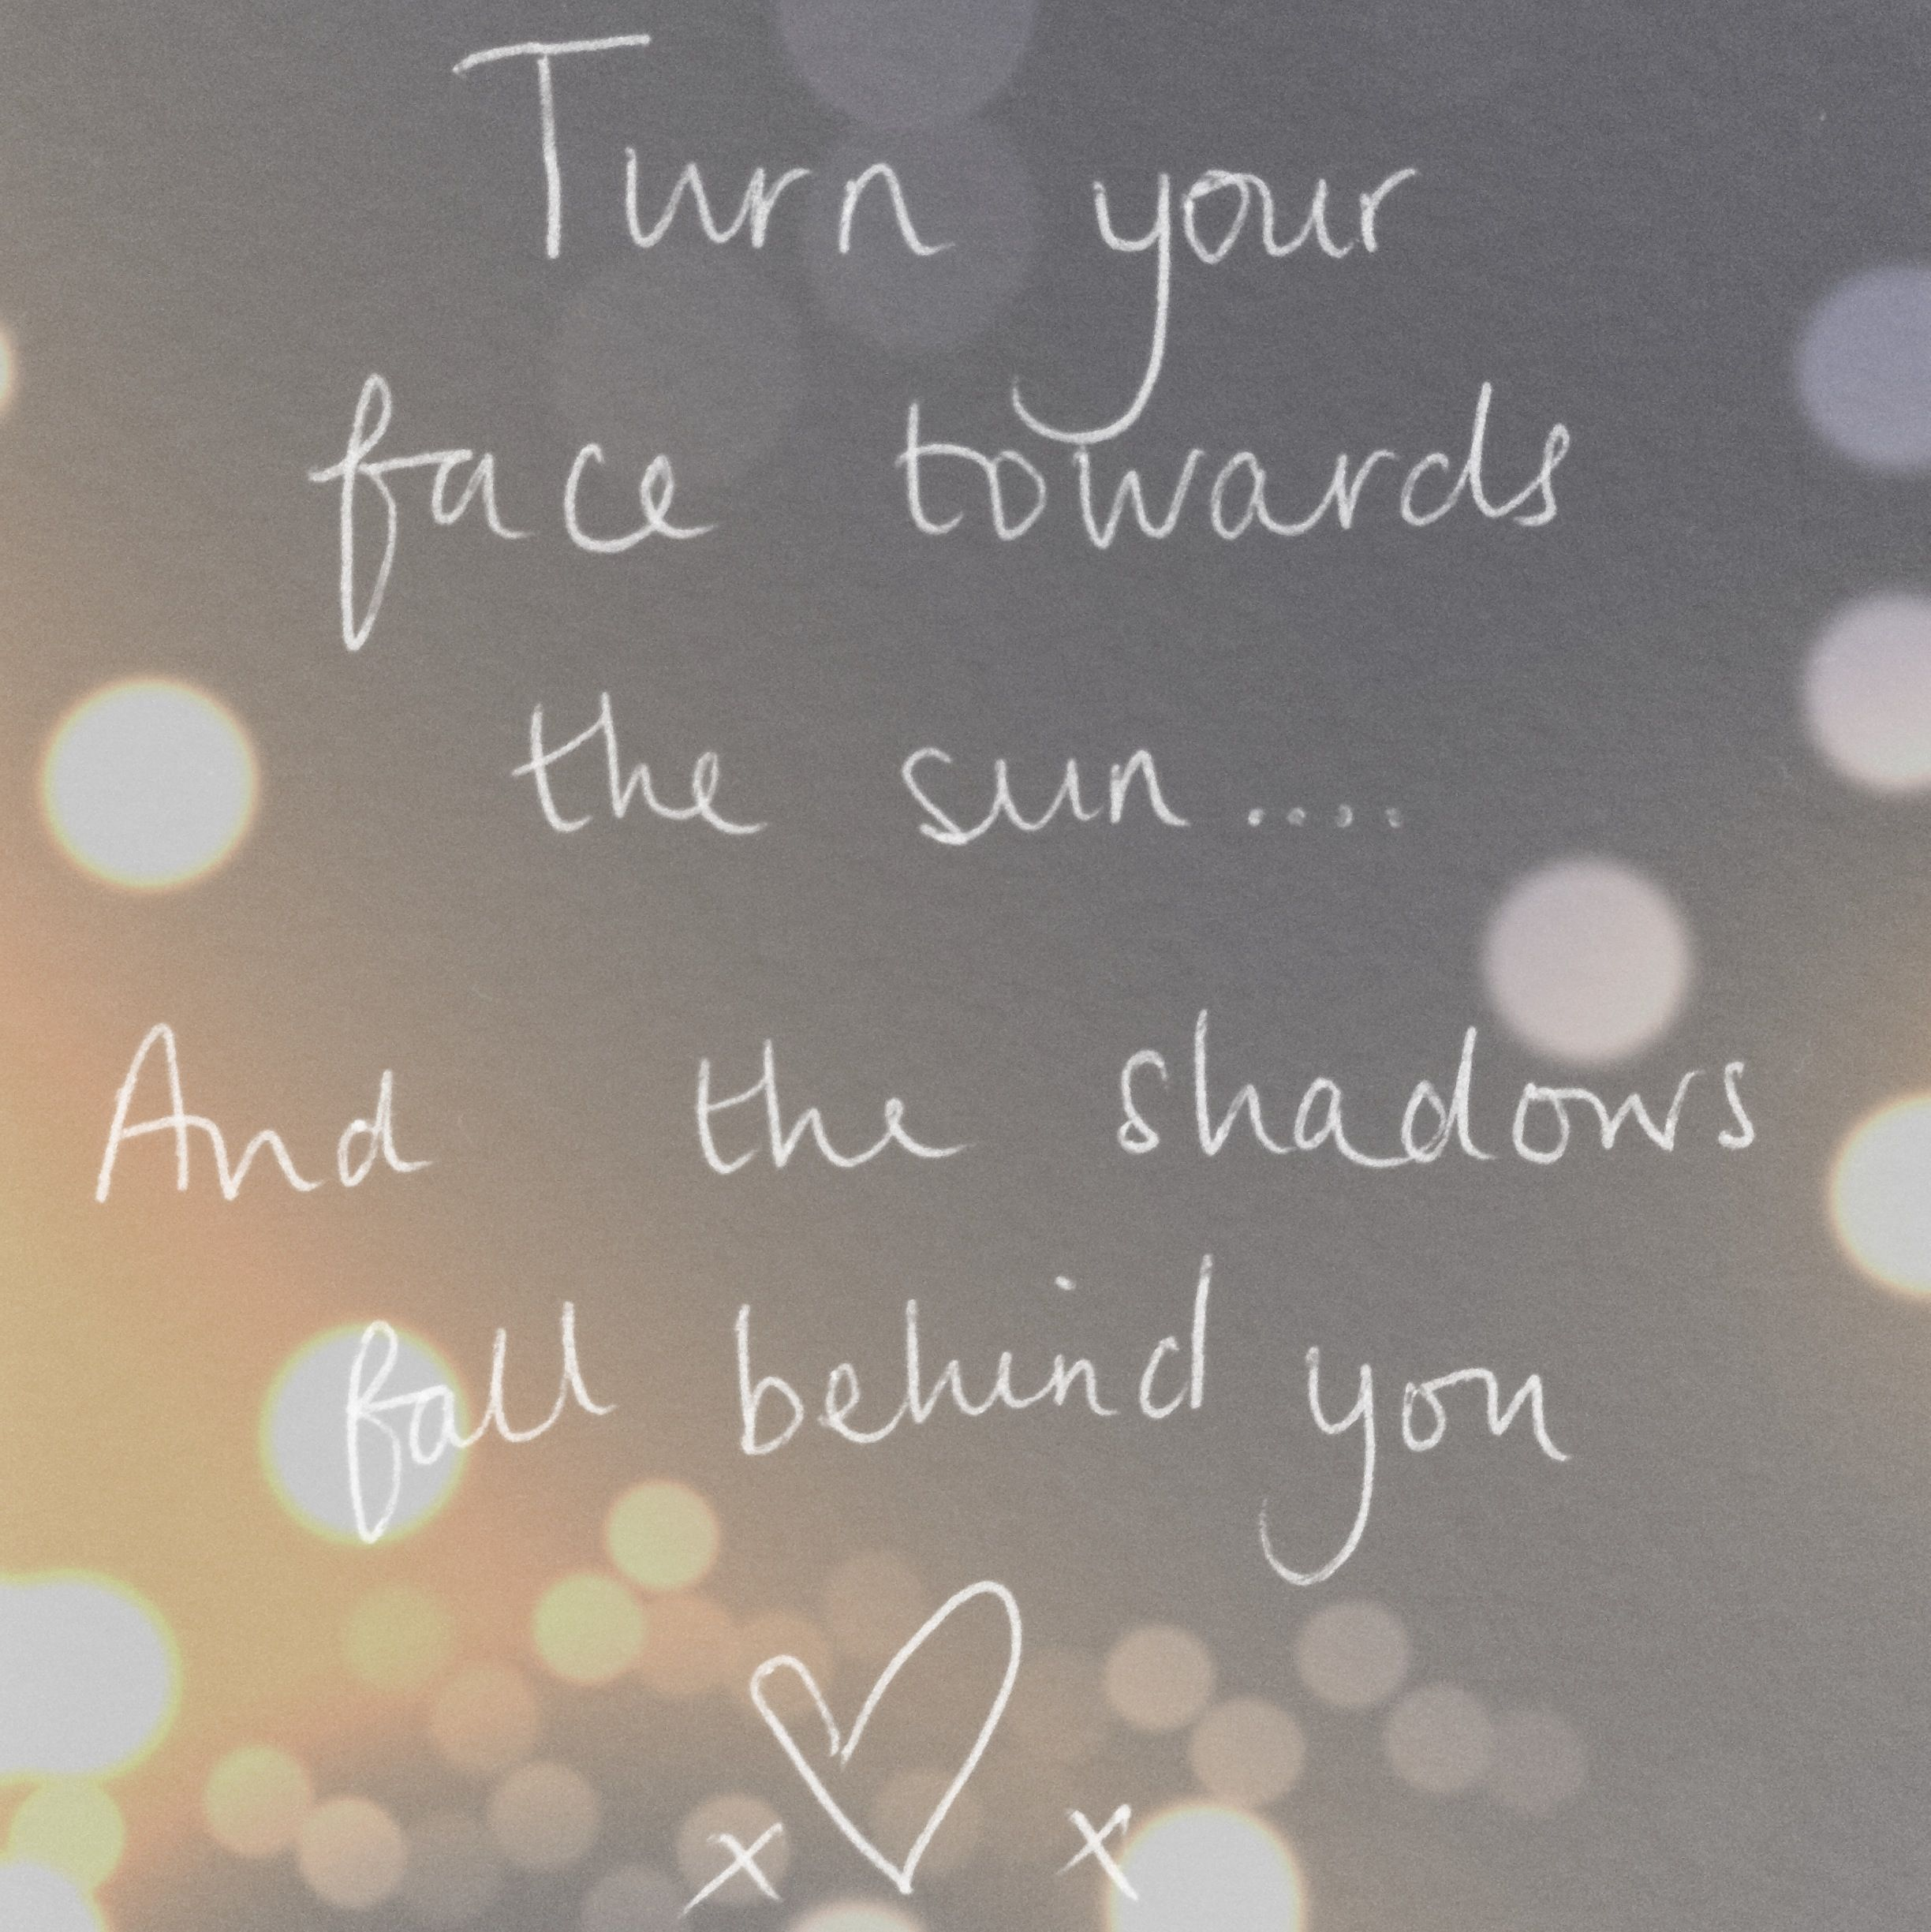 My Own Creation Turn Your Face Towards The Sun And The Shadows Will Fall Behind You X Words Quotes Friends Quotes Cool Words